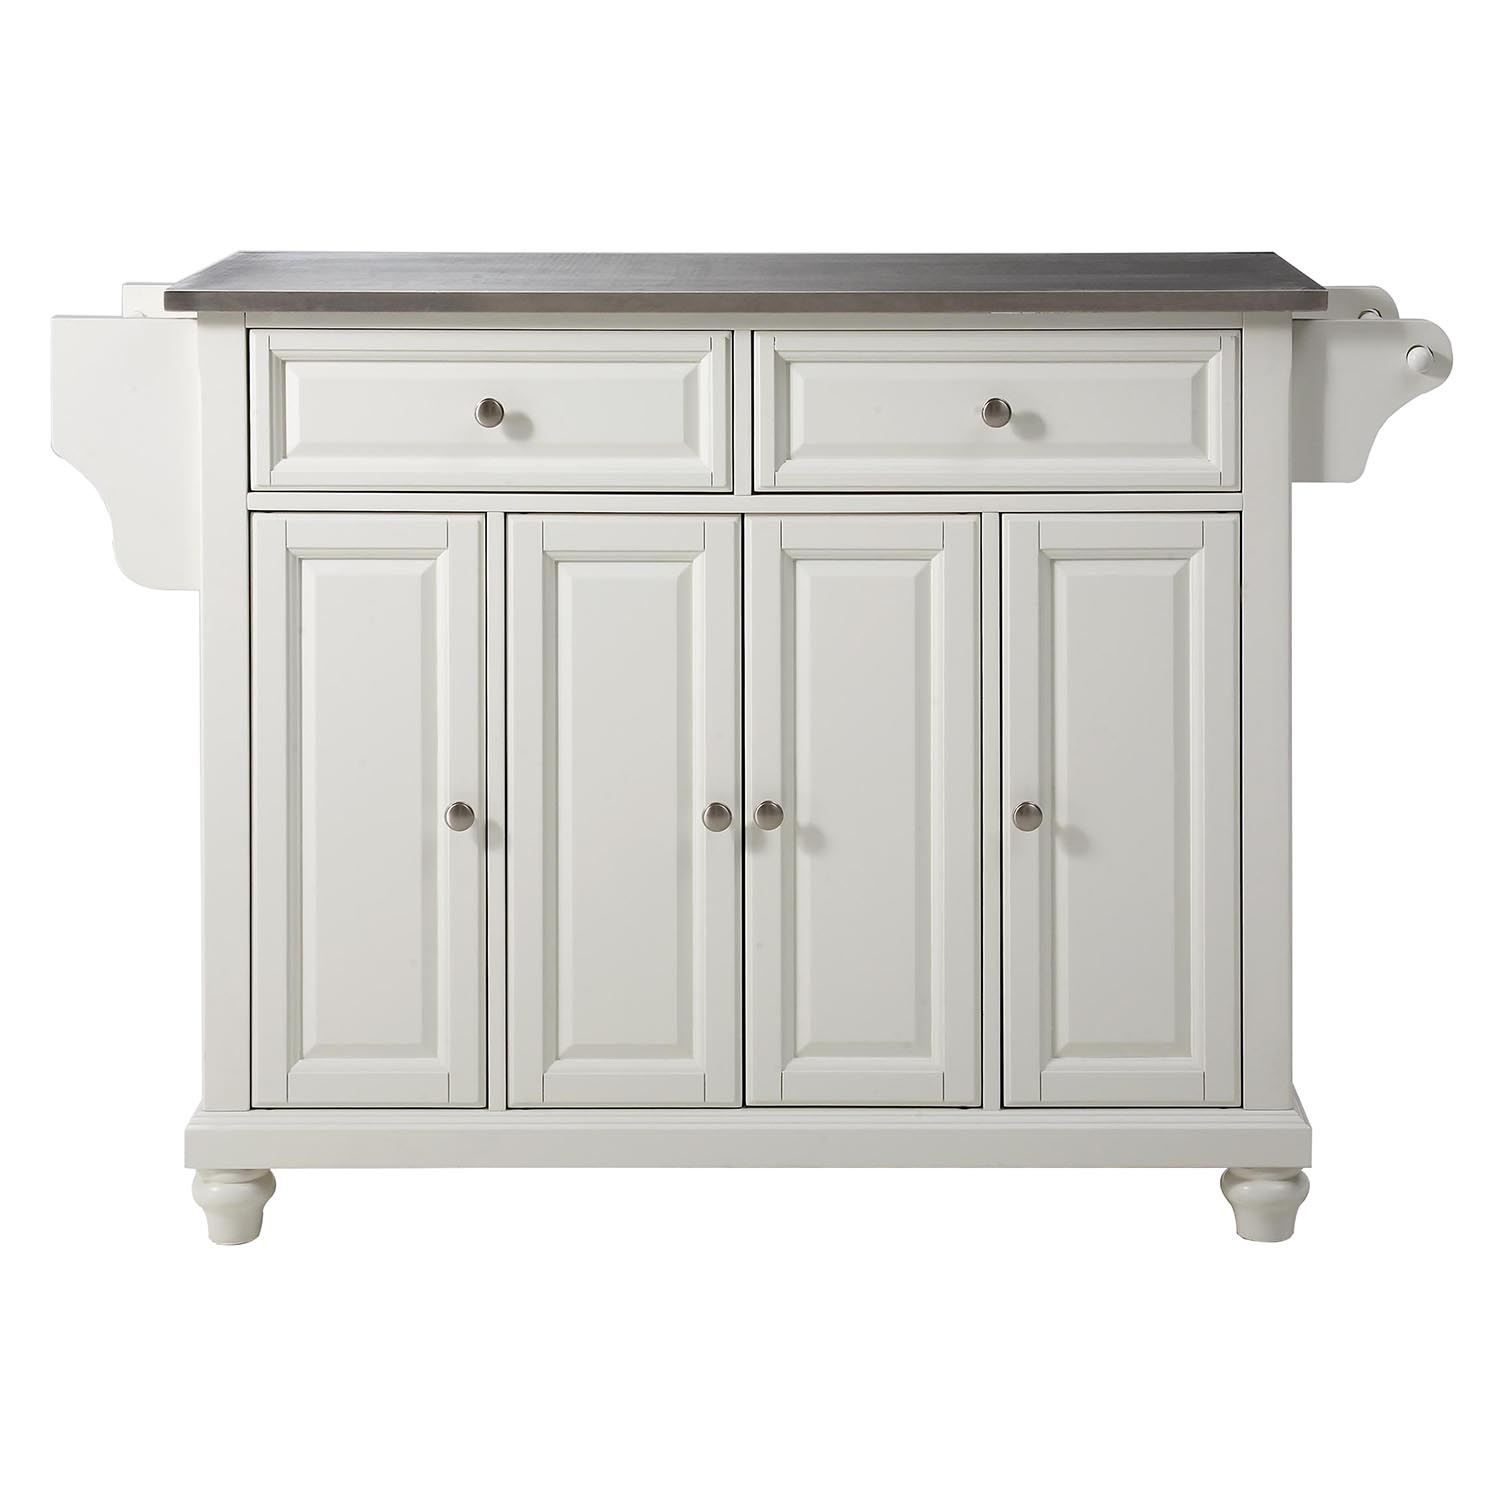 Kitchen Island With Stainless Steel Top: Cambridge Stainless Steel Top Kitchen Island - White